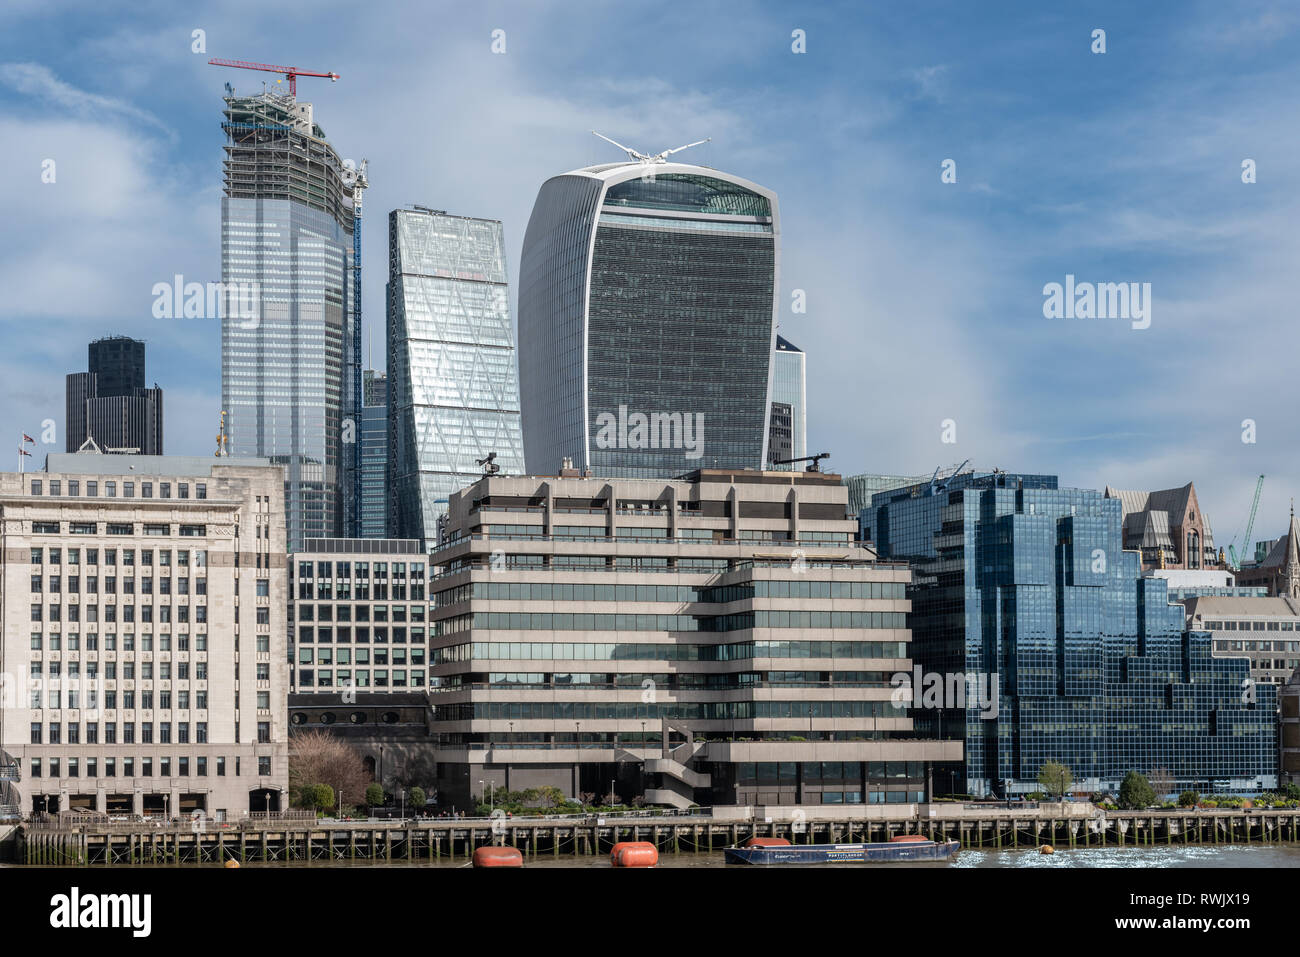 Walkie-talkie, Cheesegrater loom over the low rise buildings of Lower Thames St. - Stock Image